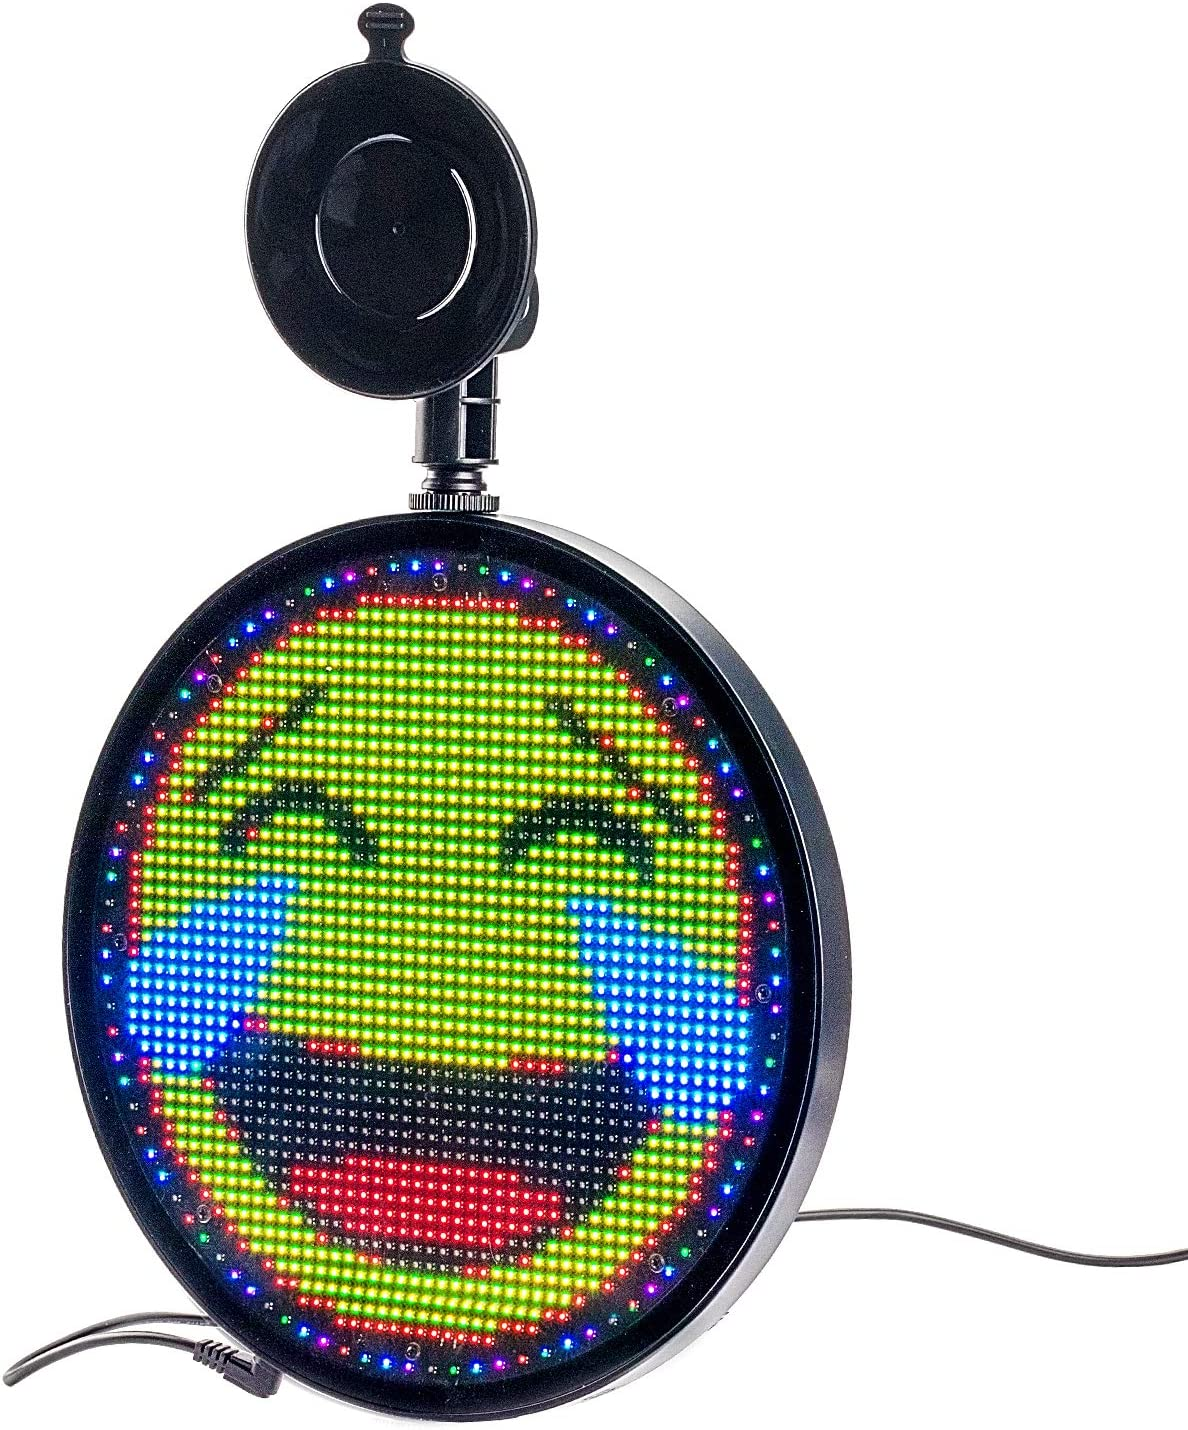 LED RGB Emoji Car Window Display Support GIF WIFI Controlled or Remote Controlled IMAGE APP Compatible iOS and Android System TEXT LED Baby Onboard Sign